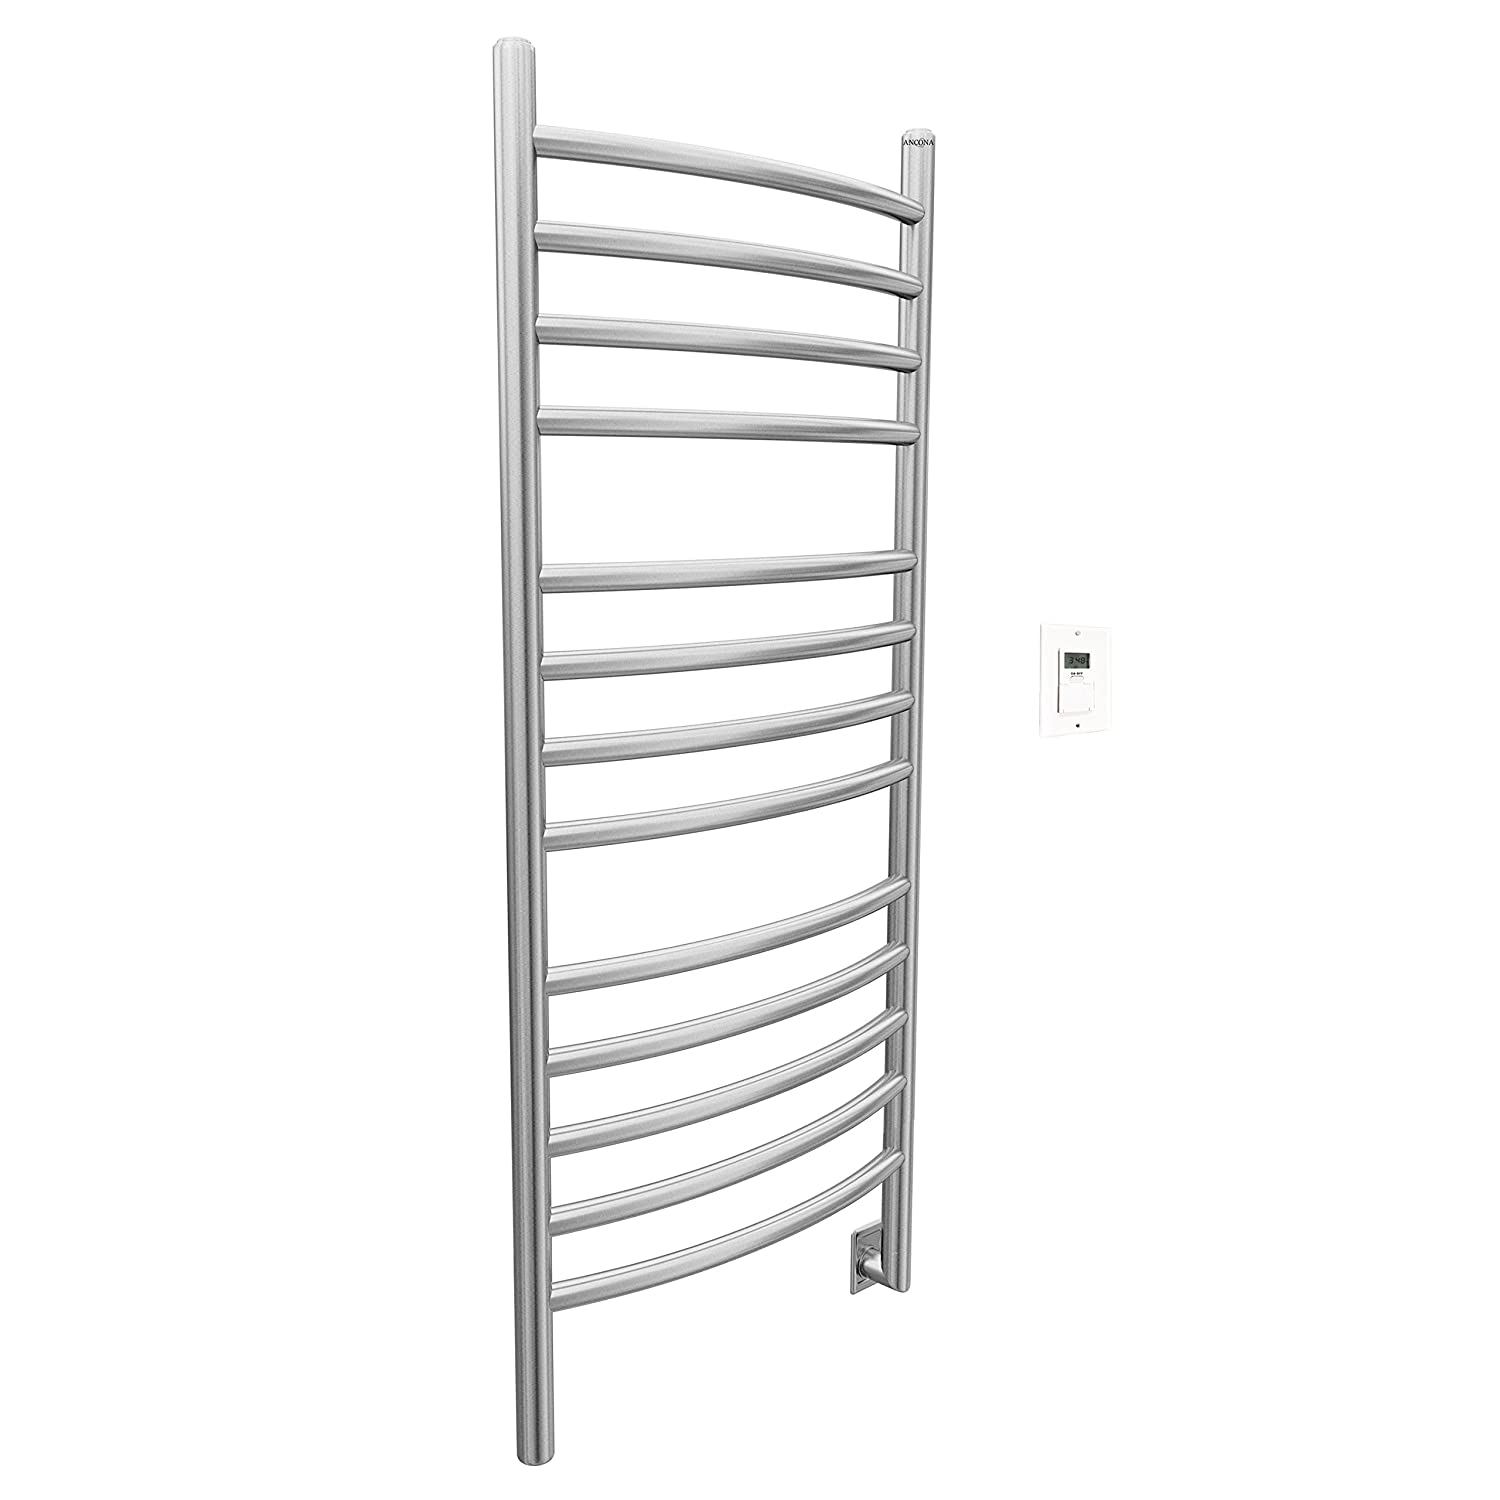 Ancona Svelte Rounded Wall Mount Electric Hardwire Timer in Brushed Chrome Towel Warmer AMS Inc AN-5423T